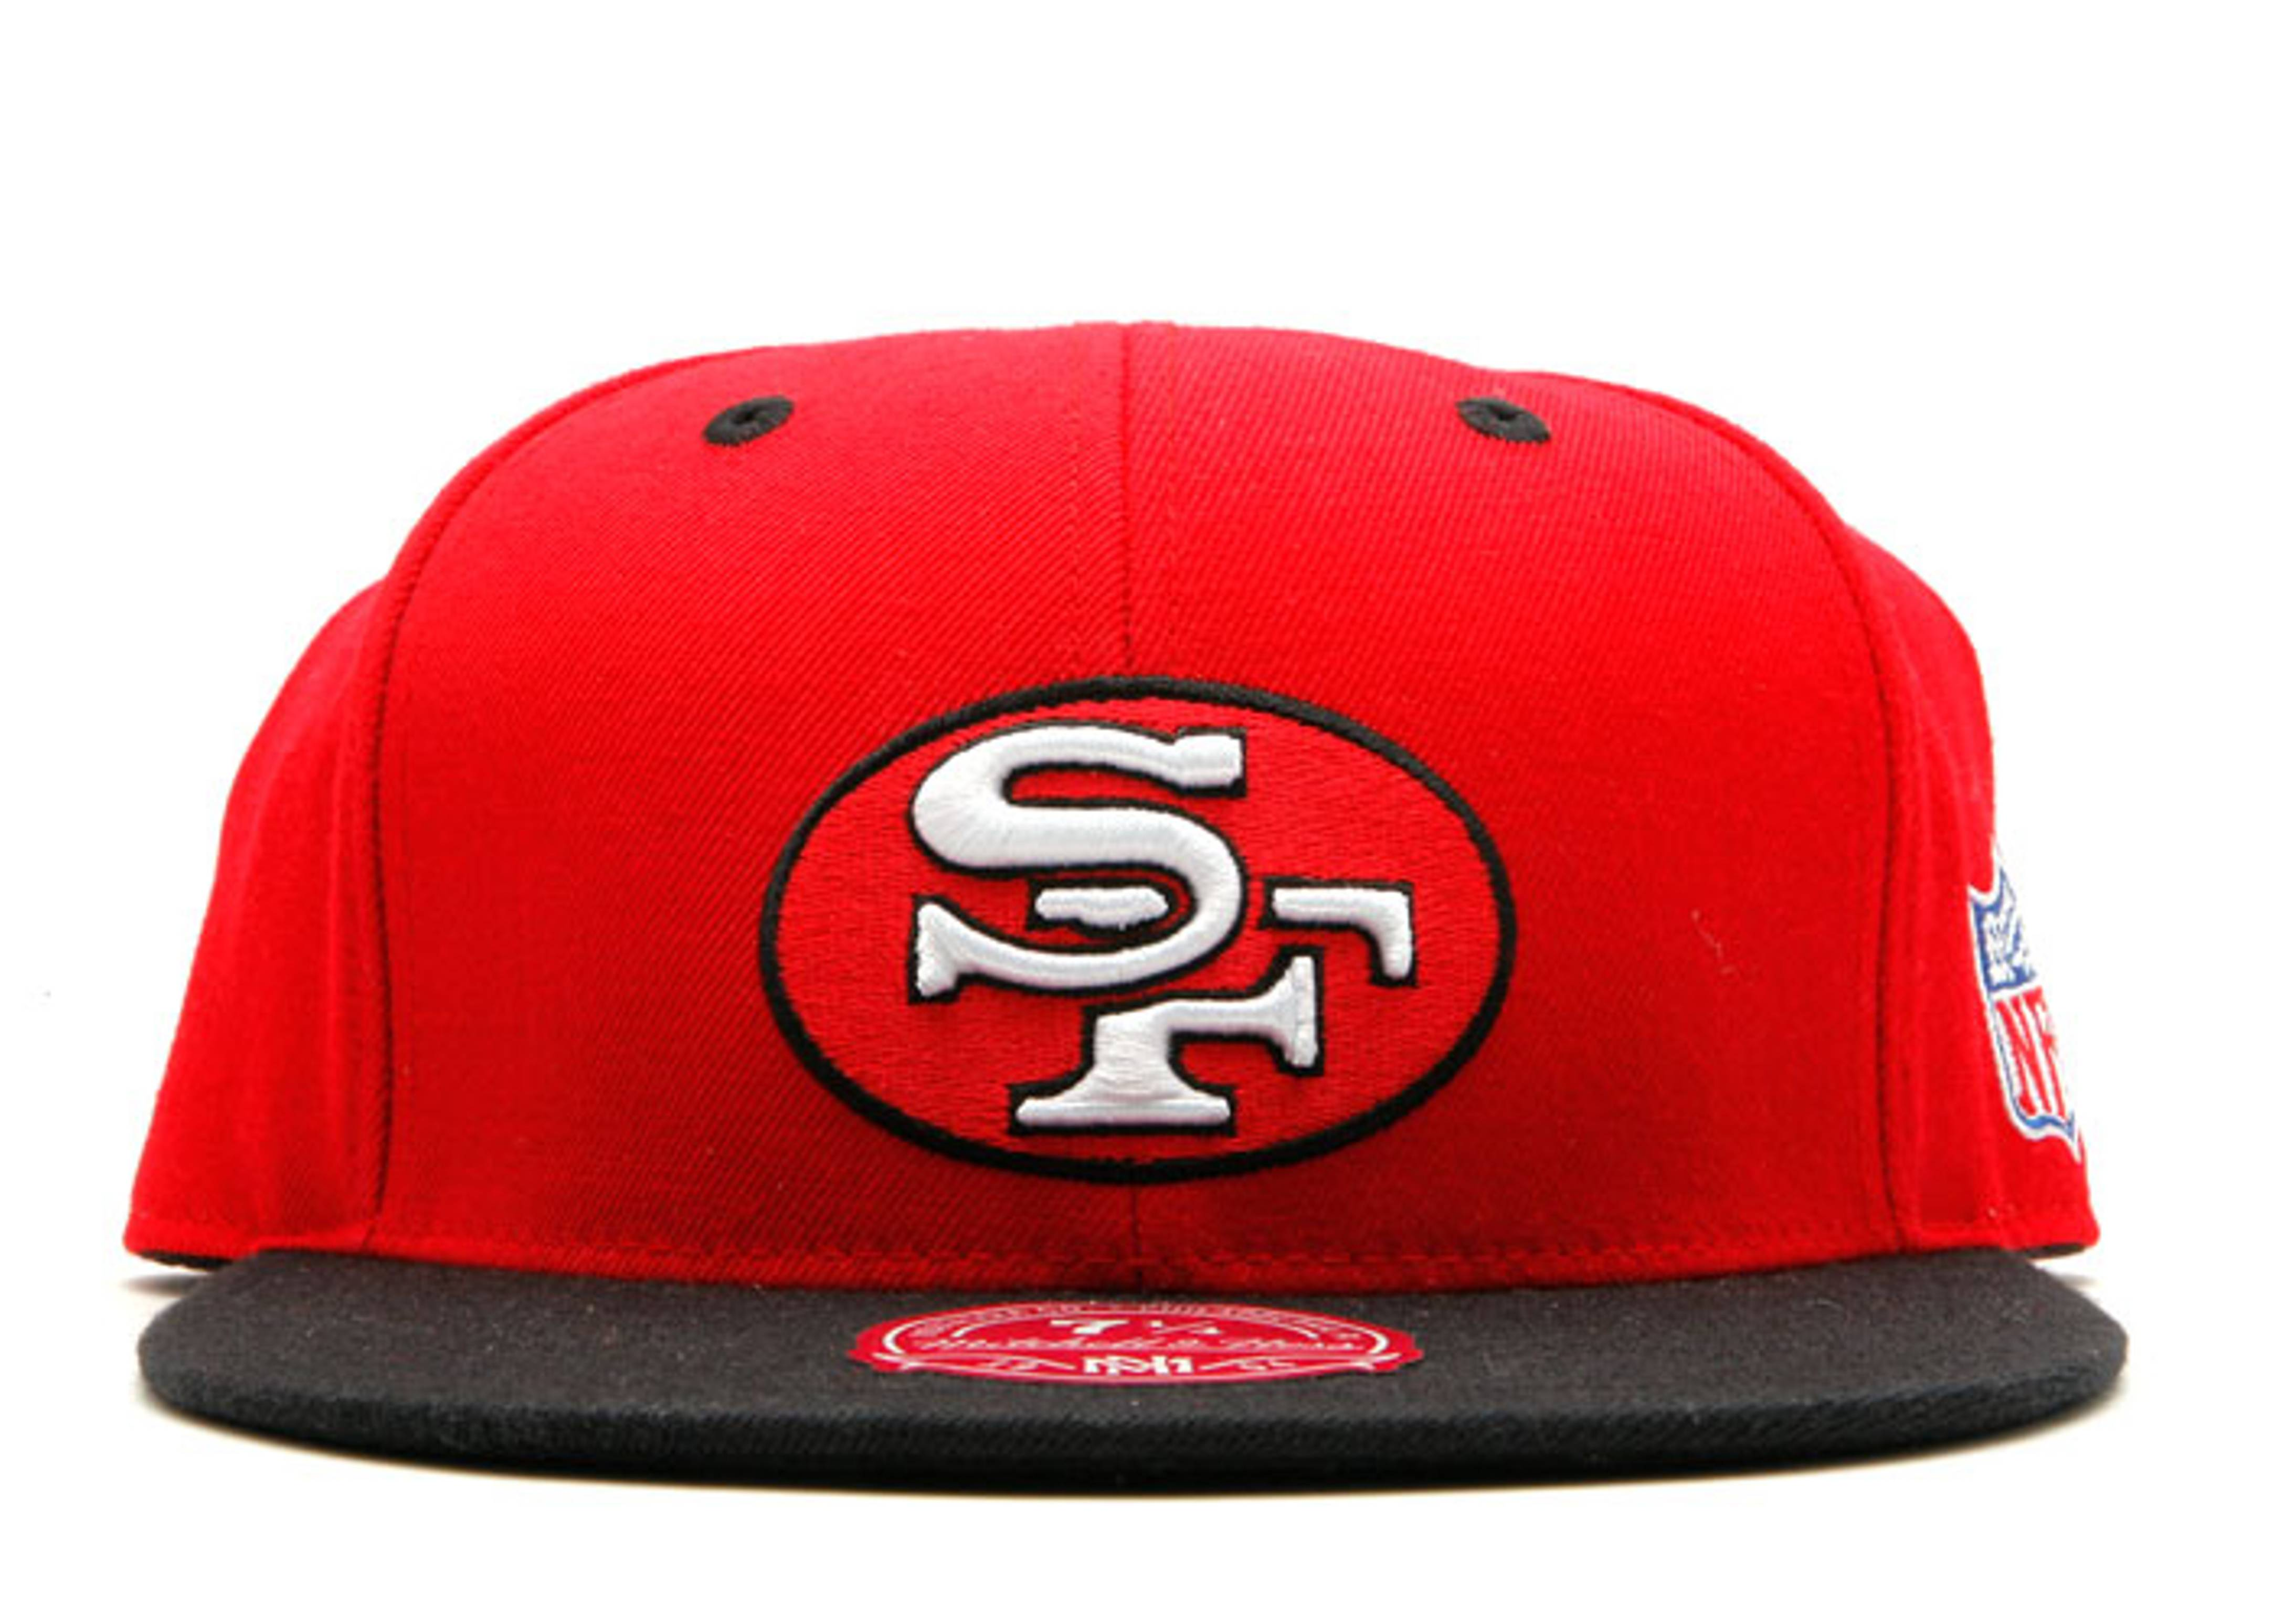 da64b78f San Francisco 49ers Fitted - Mitchell & Ness - tl89mtc649ers - red ...